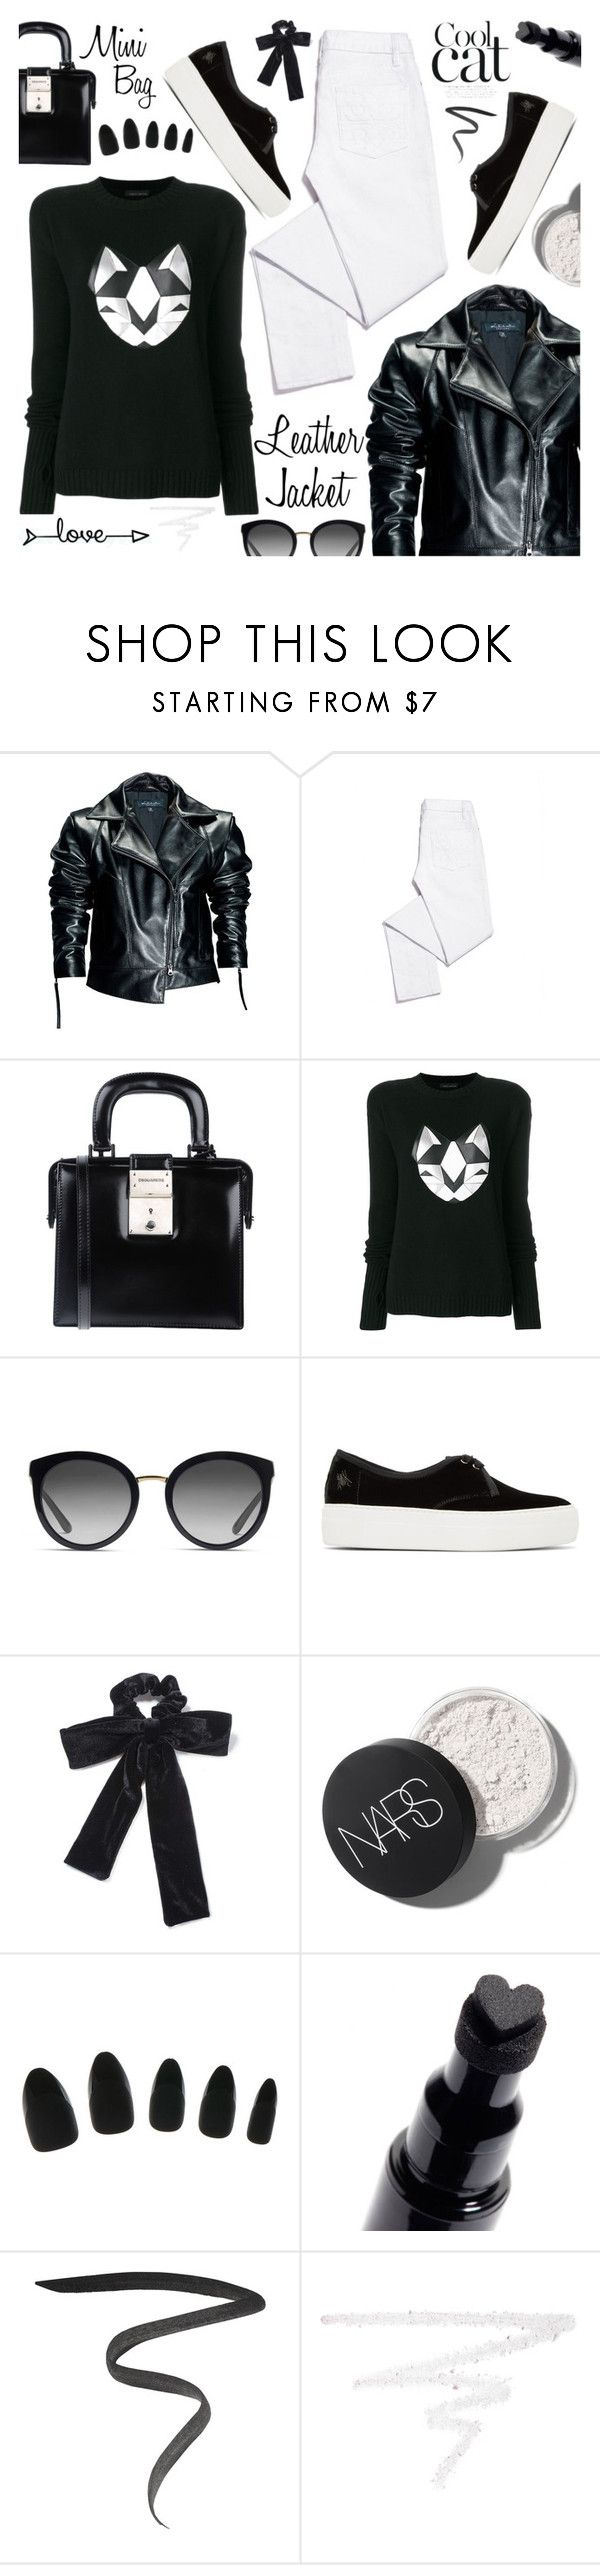 """""""Cool-Girl Style: Leather Jackets"""" by tinkabella222 ❤ liked on Polyvore featuring Leka, Tory Burch, Dsquared2, Frankie Morello, Dolce&Gabbana, Charlotte Olympia, Miss Selfridge, Marc Jacobs, Burberry and leatherjackets"""